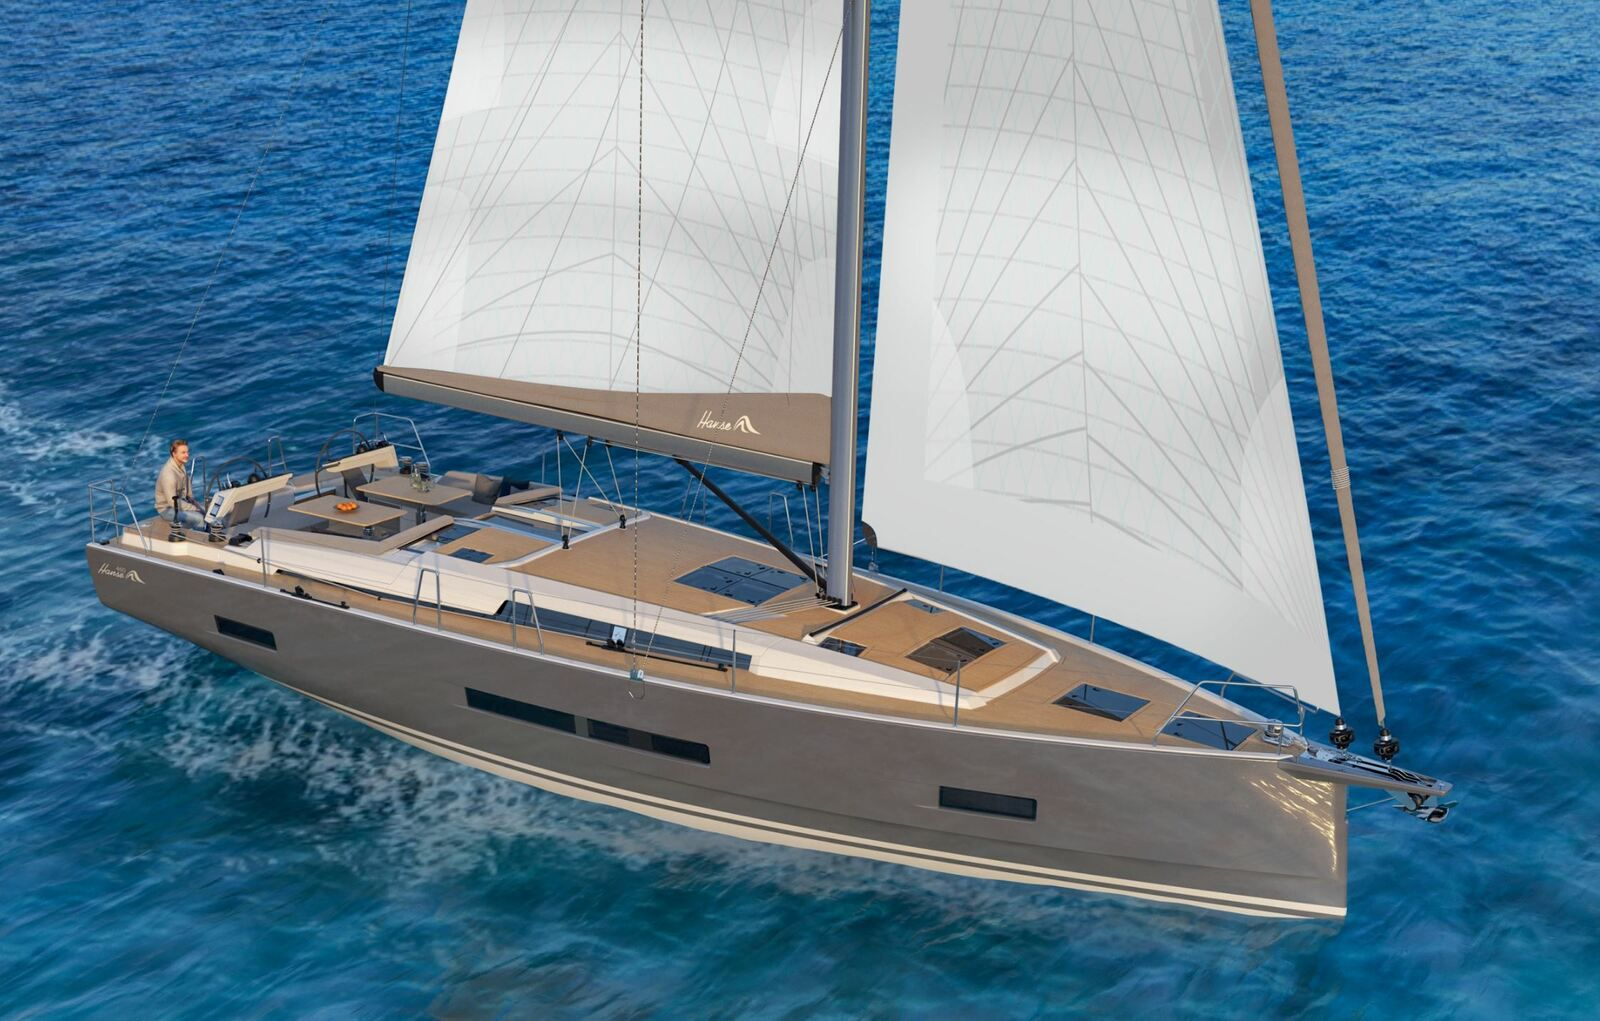 Sailing news - The new Hanse 460 yacht is styled by Berret Racoupeau